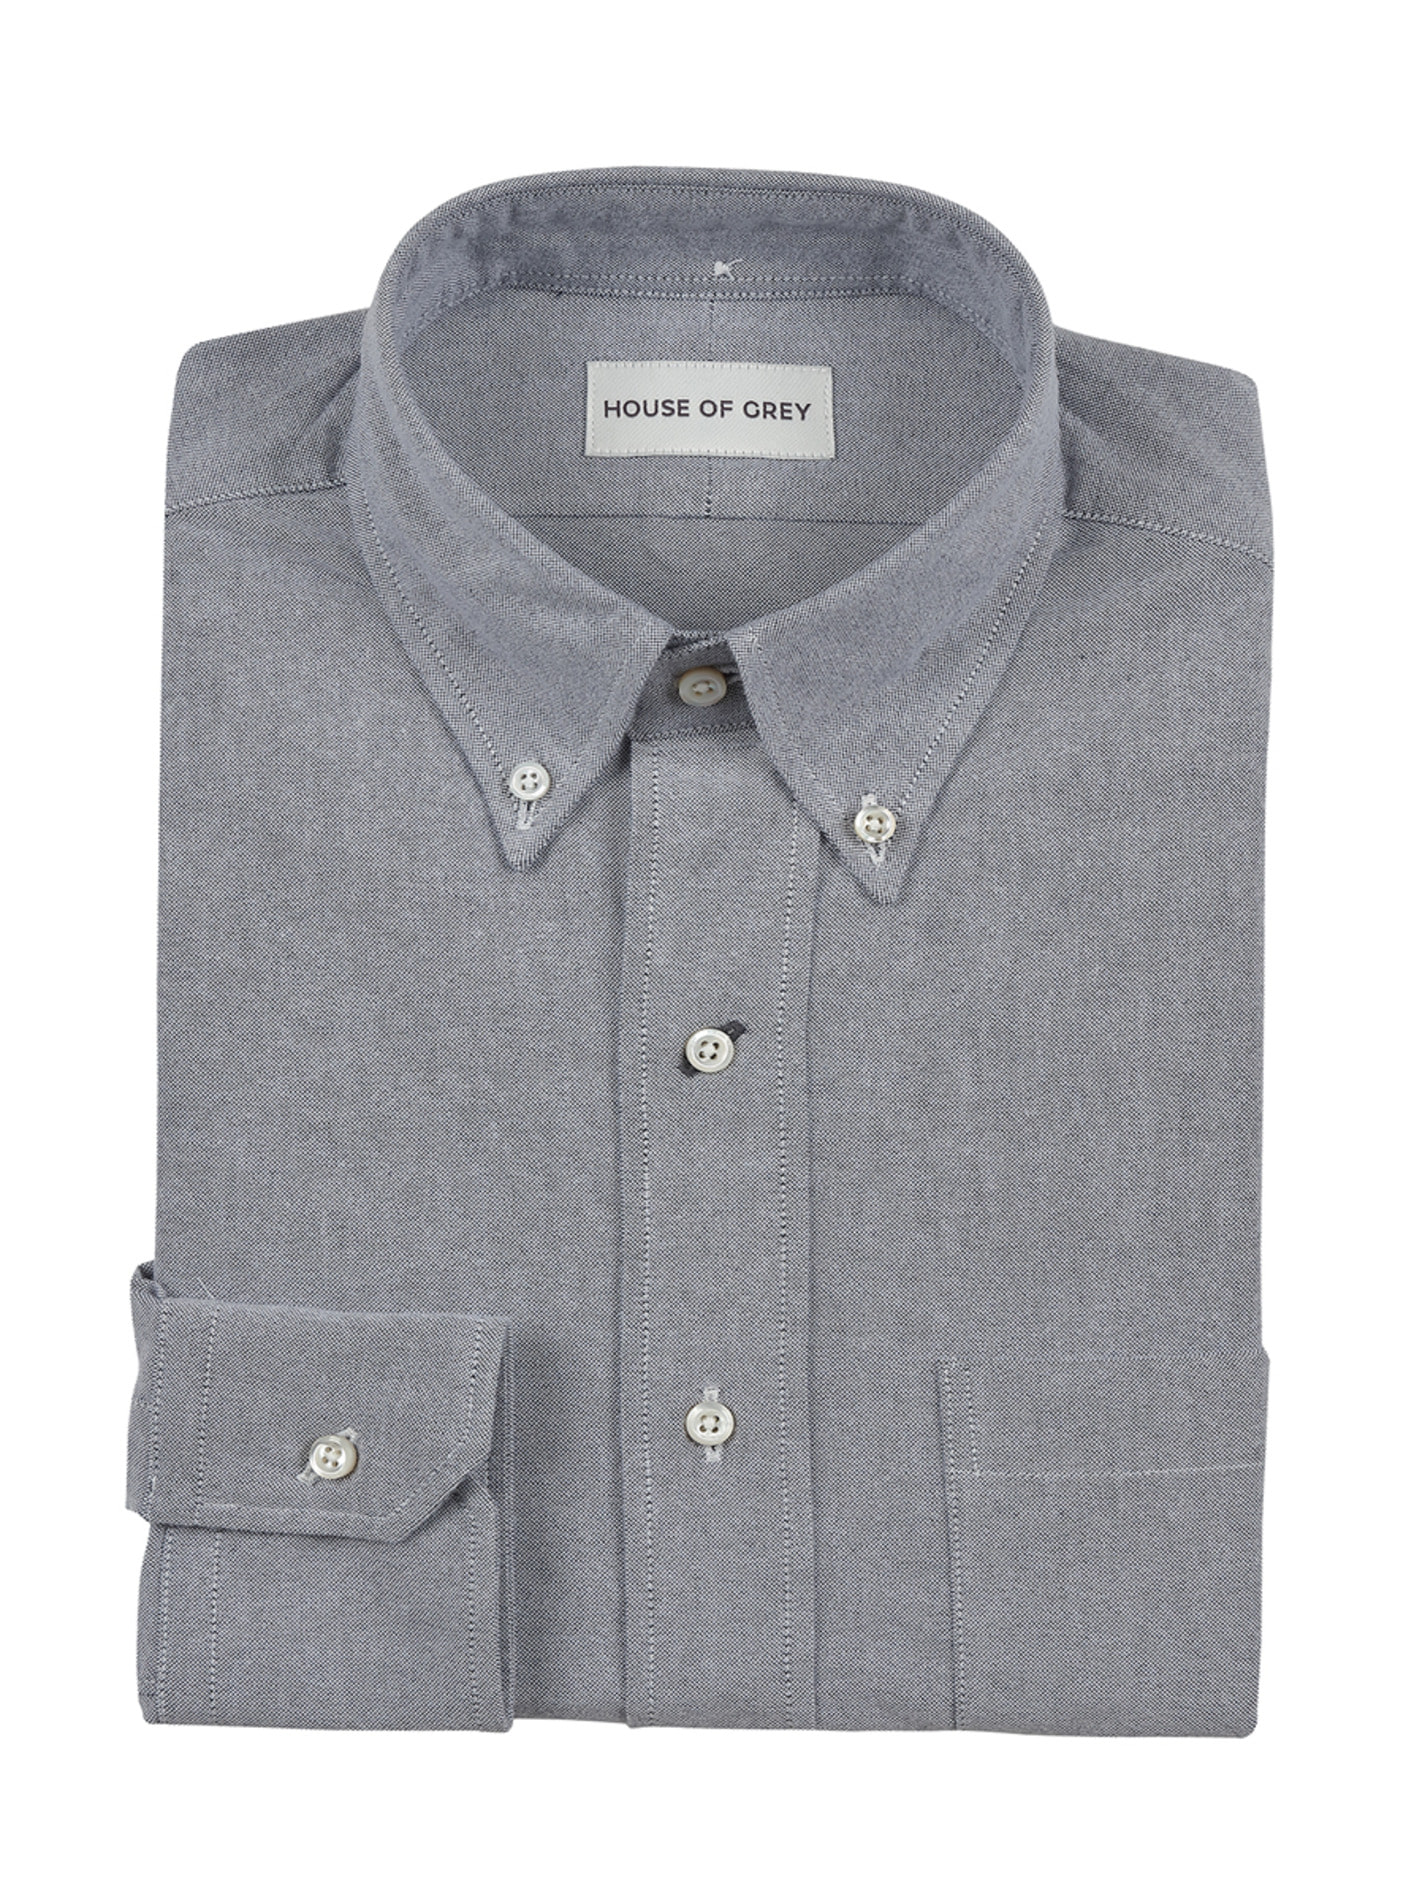 [30% SALE] FLANNEL GREY